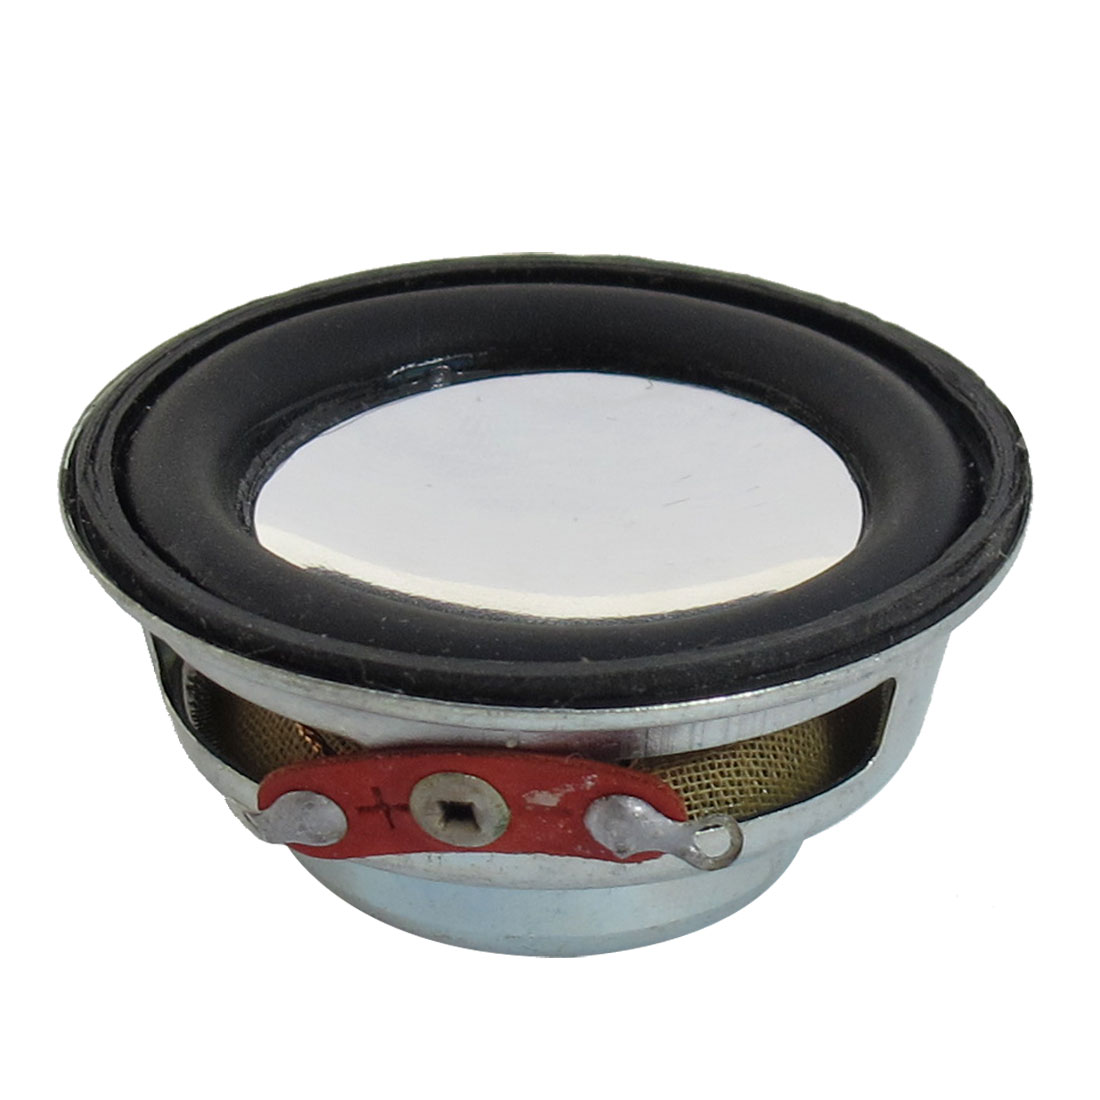 3W 3 Watt 8 Ohm 40mm Dia Magnetic Type Aluminum Shell Round Speaker